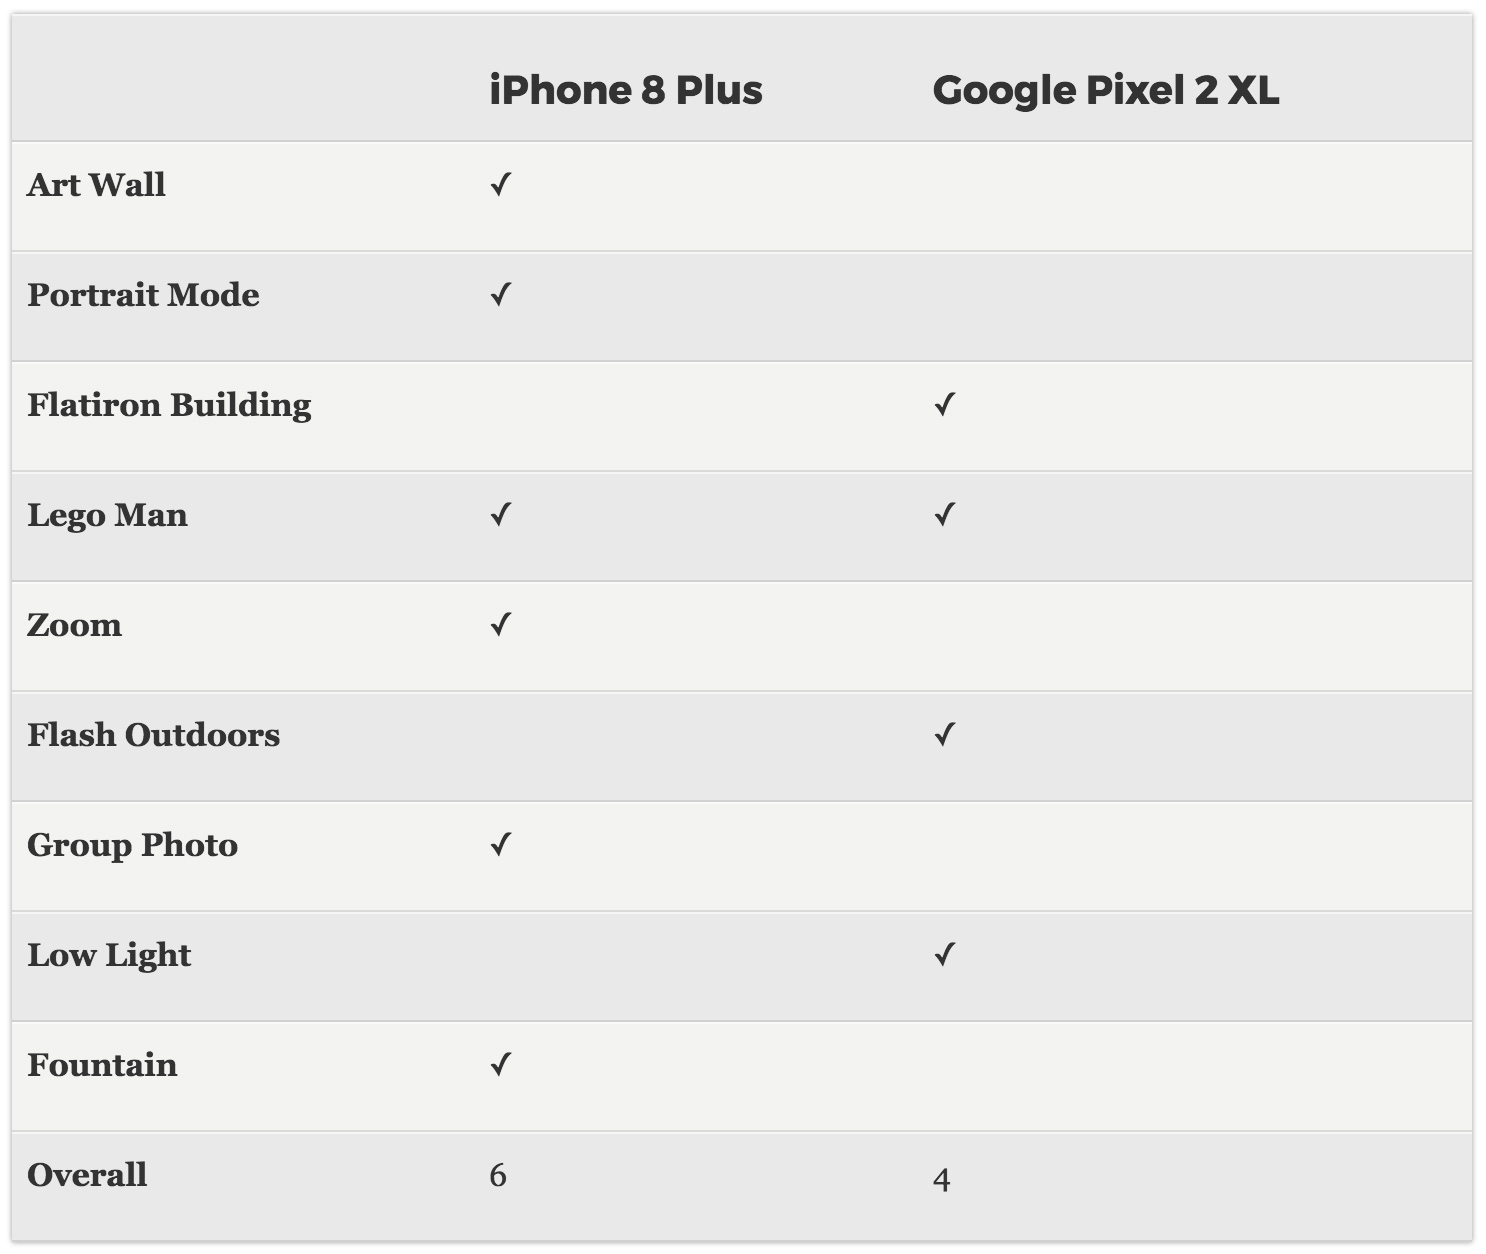 Comparison table of images taken with iPhone 8 Plus and Pixel 2